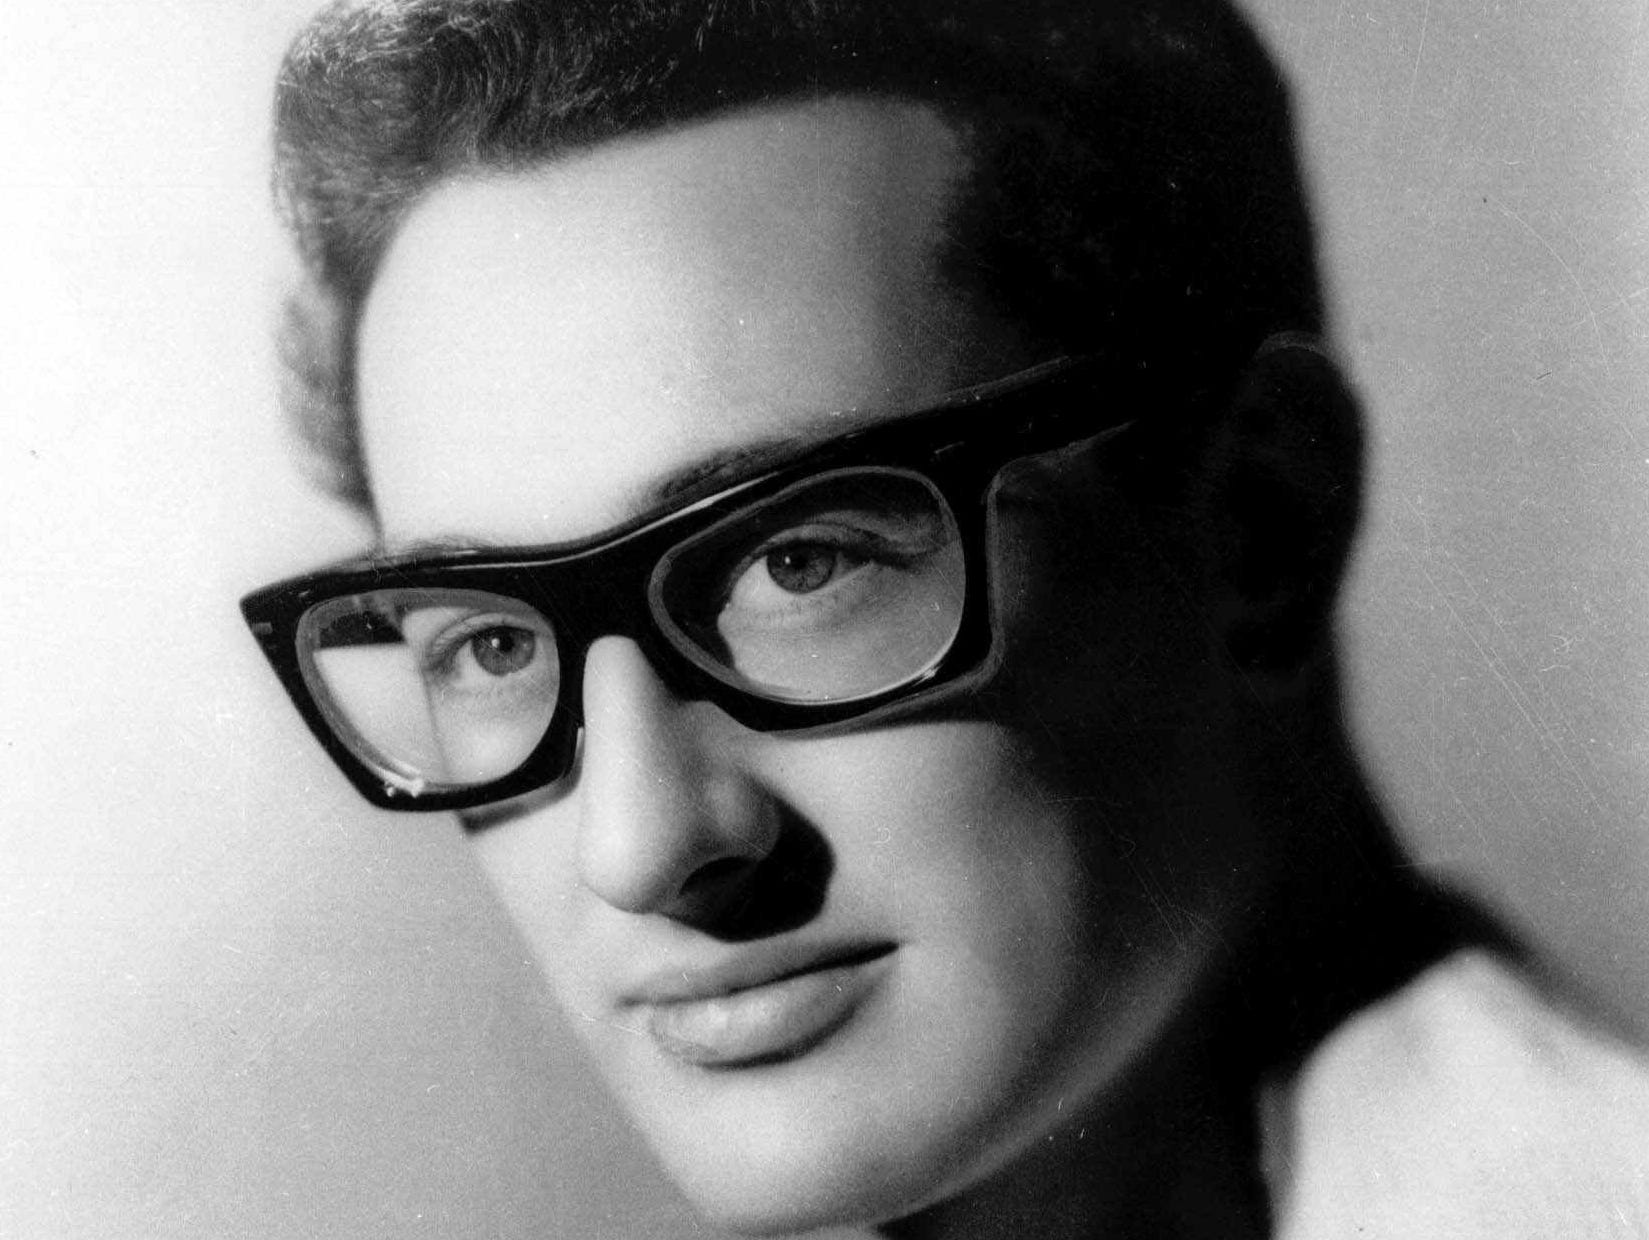 This is an undated file photo of Buddy Holly who died in 1959. For thousands of '50s rock 'n' roll fans who travel each year to the Surf Ballroom in Clear Lake, Iowa, the music lives on and remains reason for an annual celebration to honor Holly, Ritchie Valens and J.P. ``The Big Bopper'' Richardson who died Feb. 3, 1959, just after performing at the Surf. (AP Photo/File)